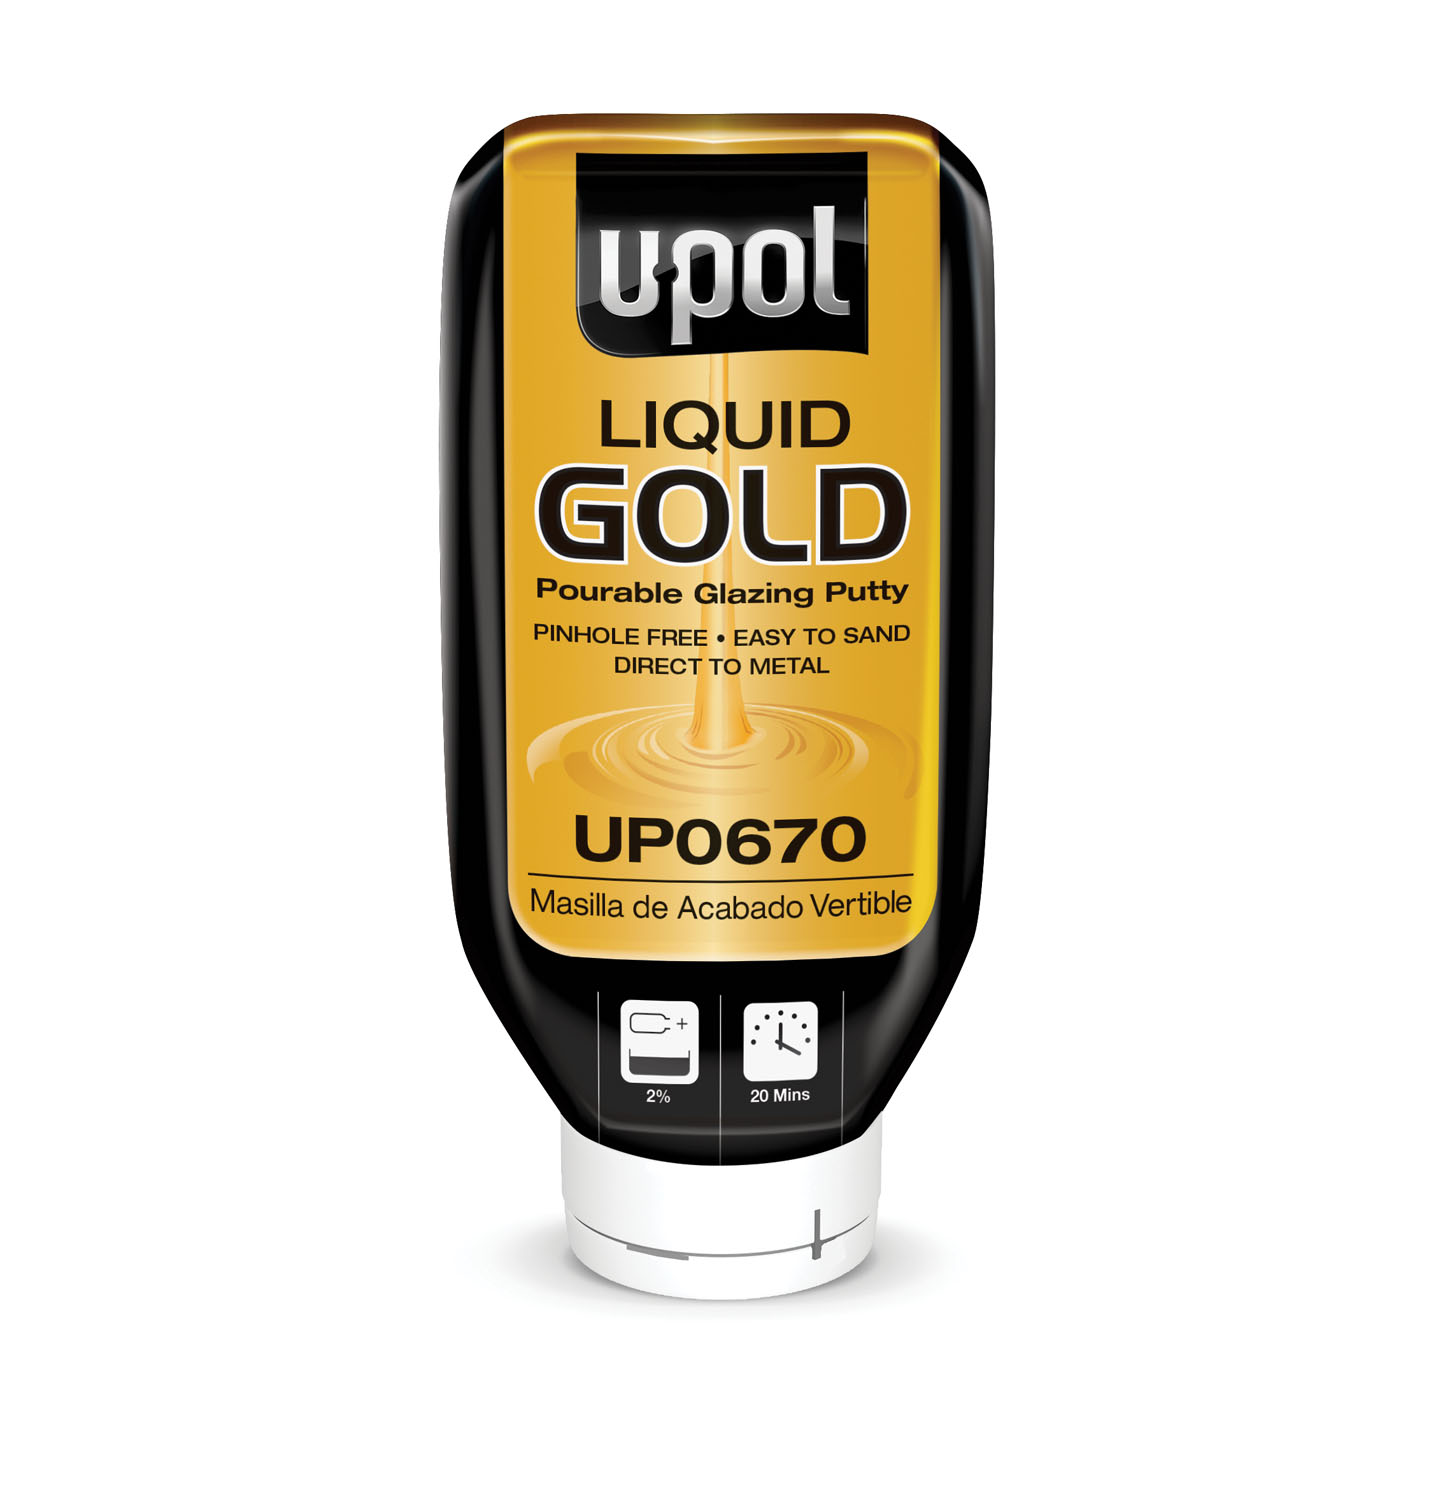 U-POL Products Liquid Gold ™, Pourable Glazing Putty UPL-UP0670